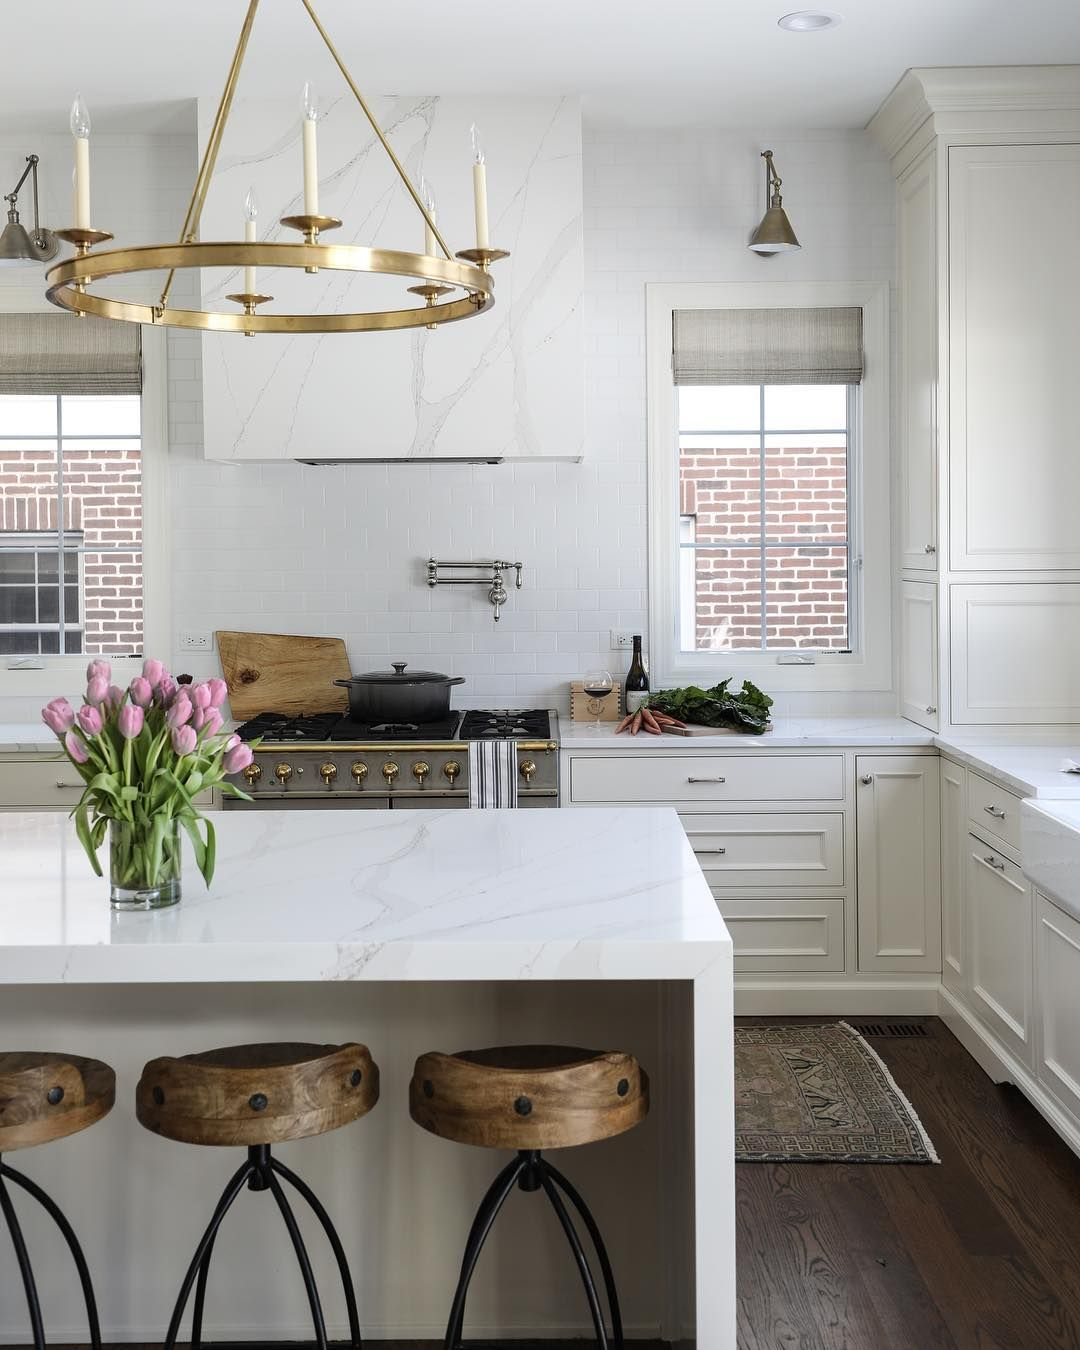 Client Spotlight Park Oak The Timeless Launceton Ring Chandelier Hangs Above The Modern Waterfall Kitchen Island Home Kitchens Kitchen Inspirations Home